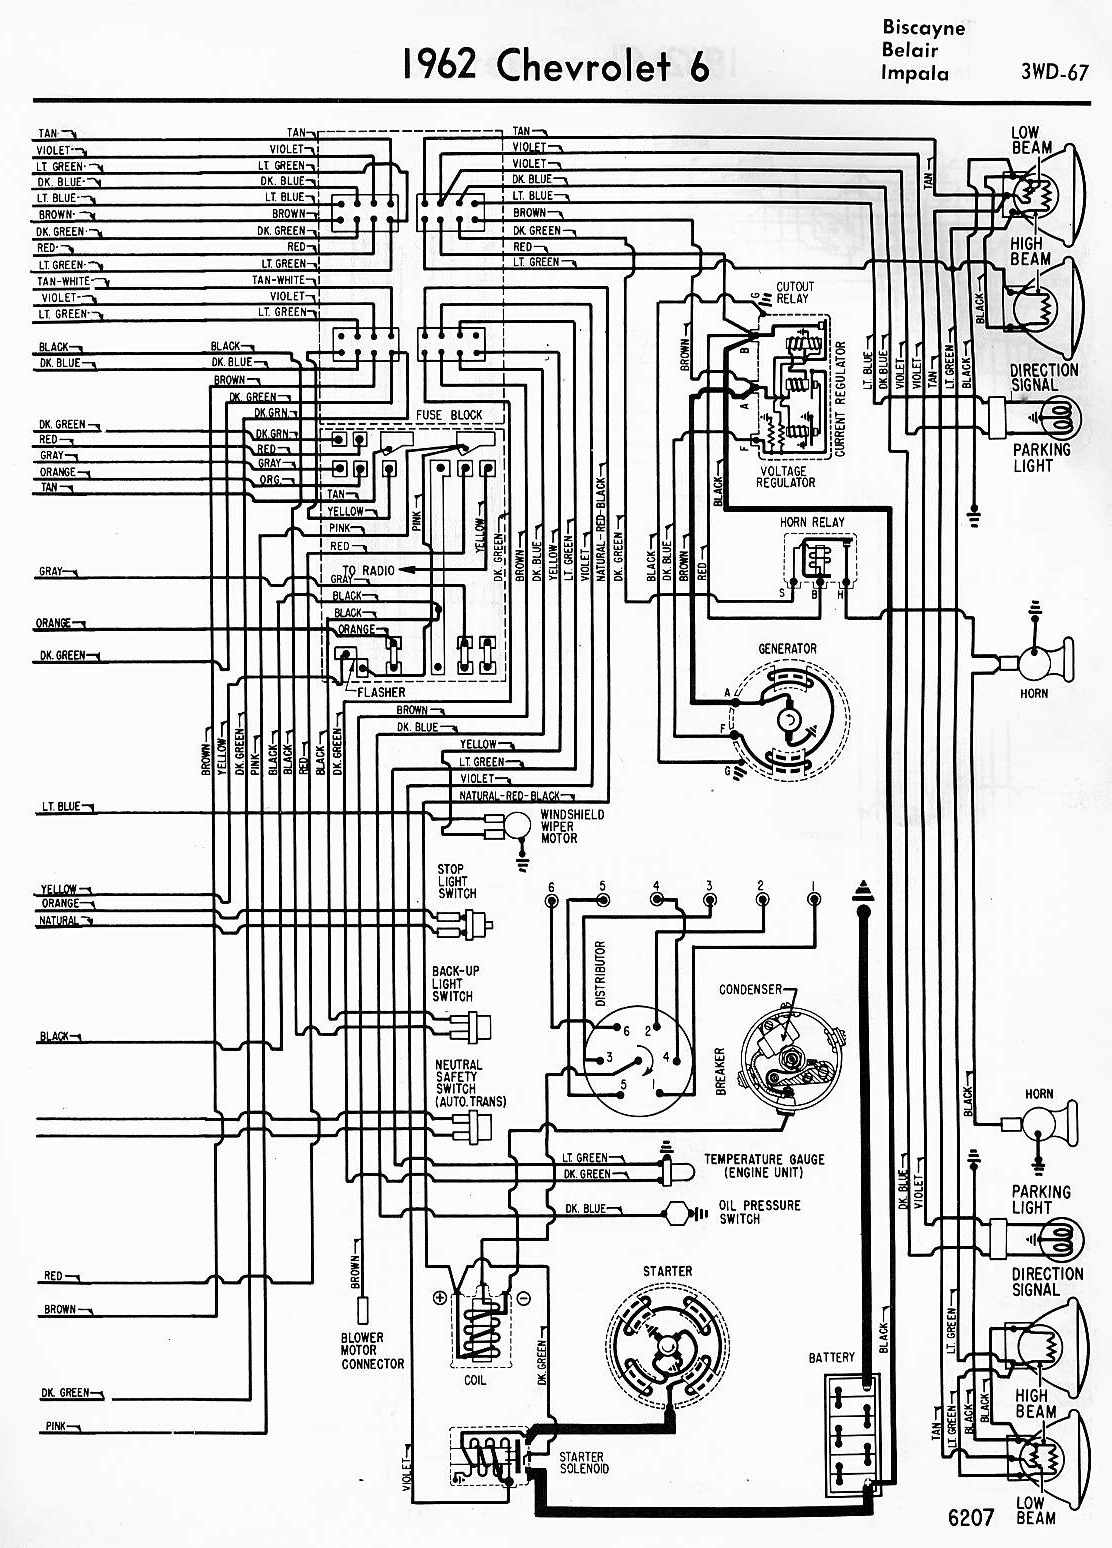 Electrical+Wiring+Diagram+Of+1964+Chevrolet+6 electrical wiring diagram of 1962 chevrolet 6 all about wiring 1964 corvair wiring diagram at love-stories.co